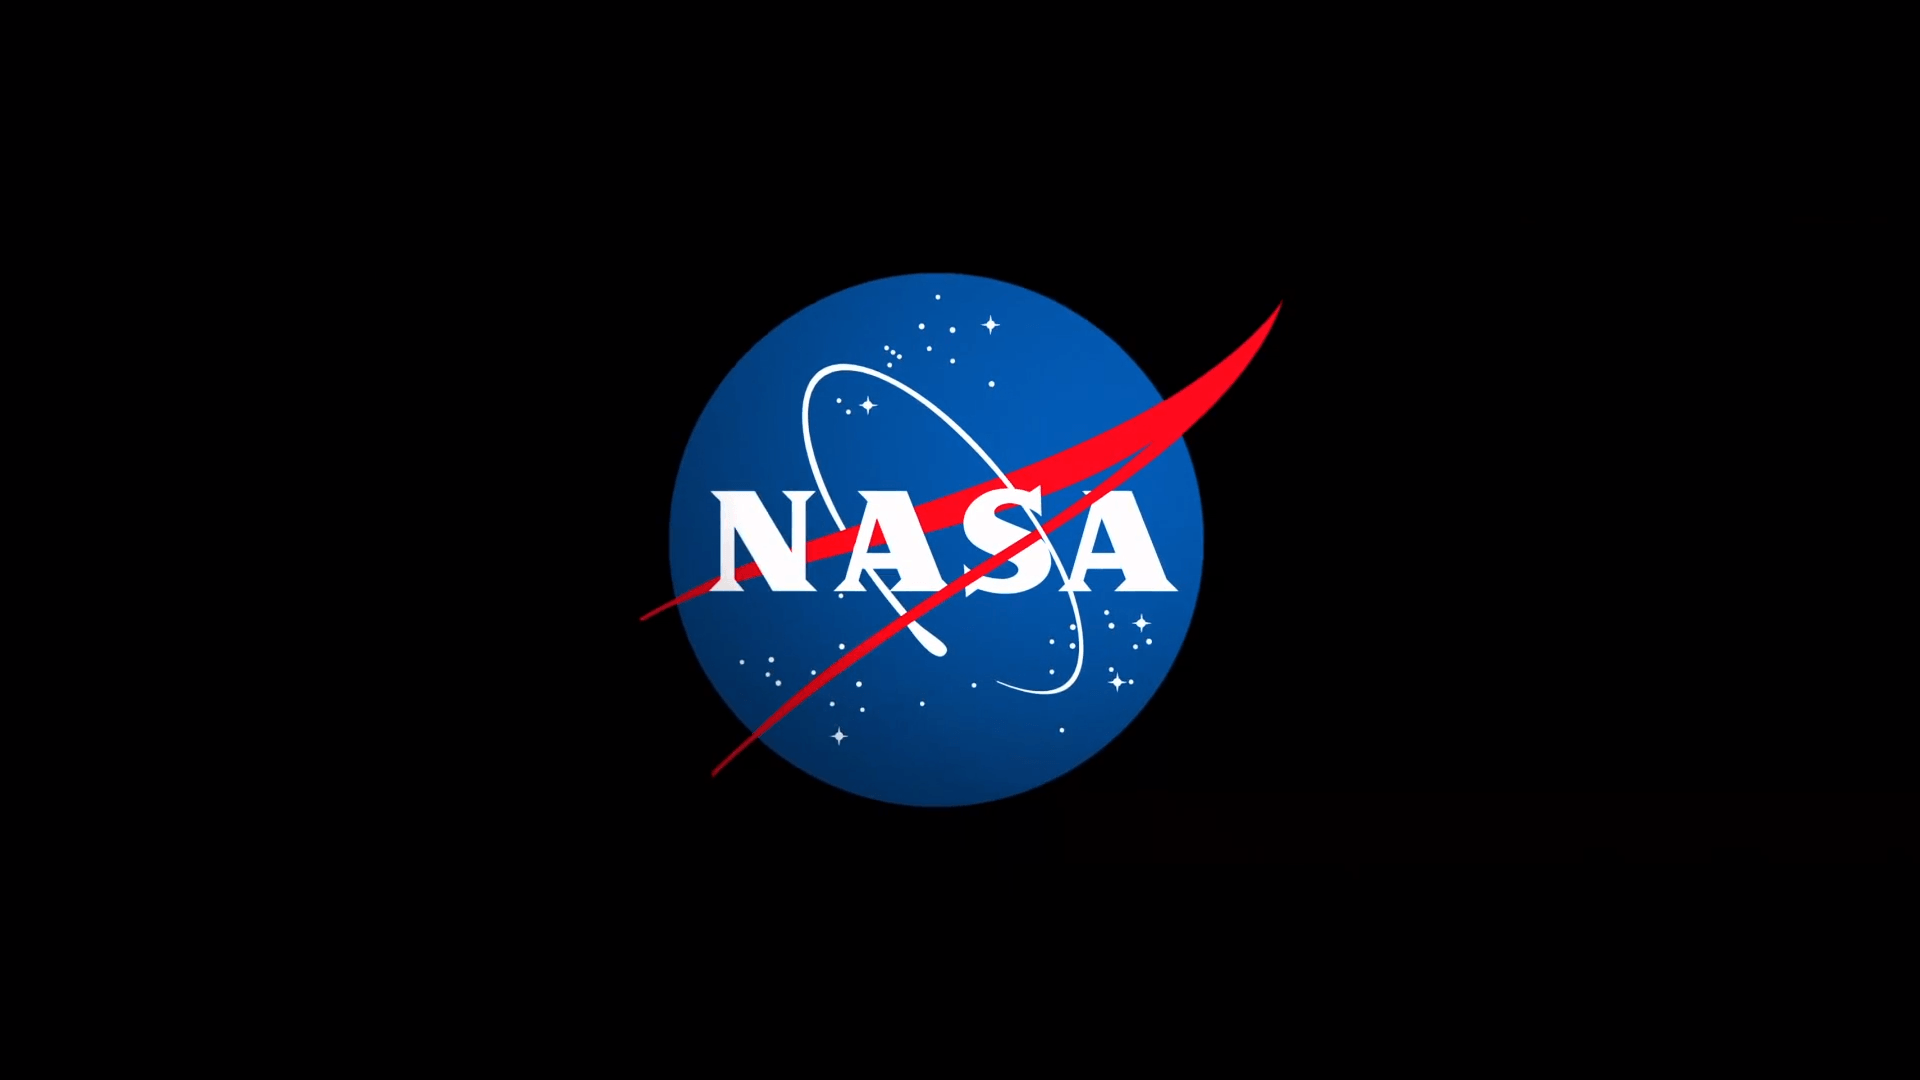 NASA Logo Wallpapers - Wallpaper Cave